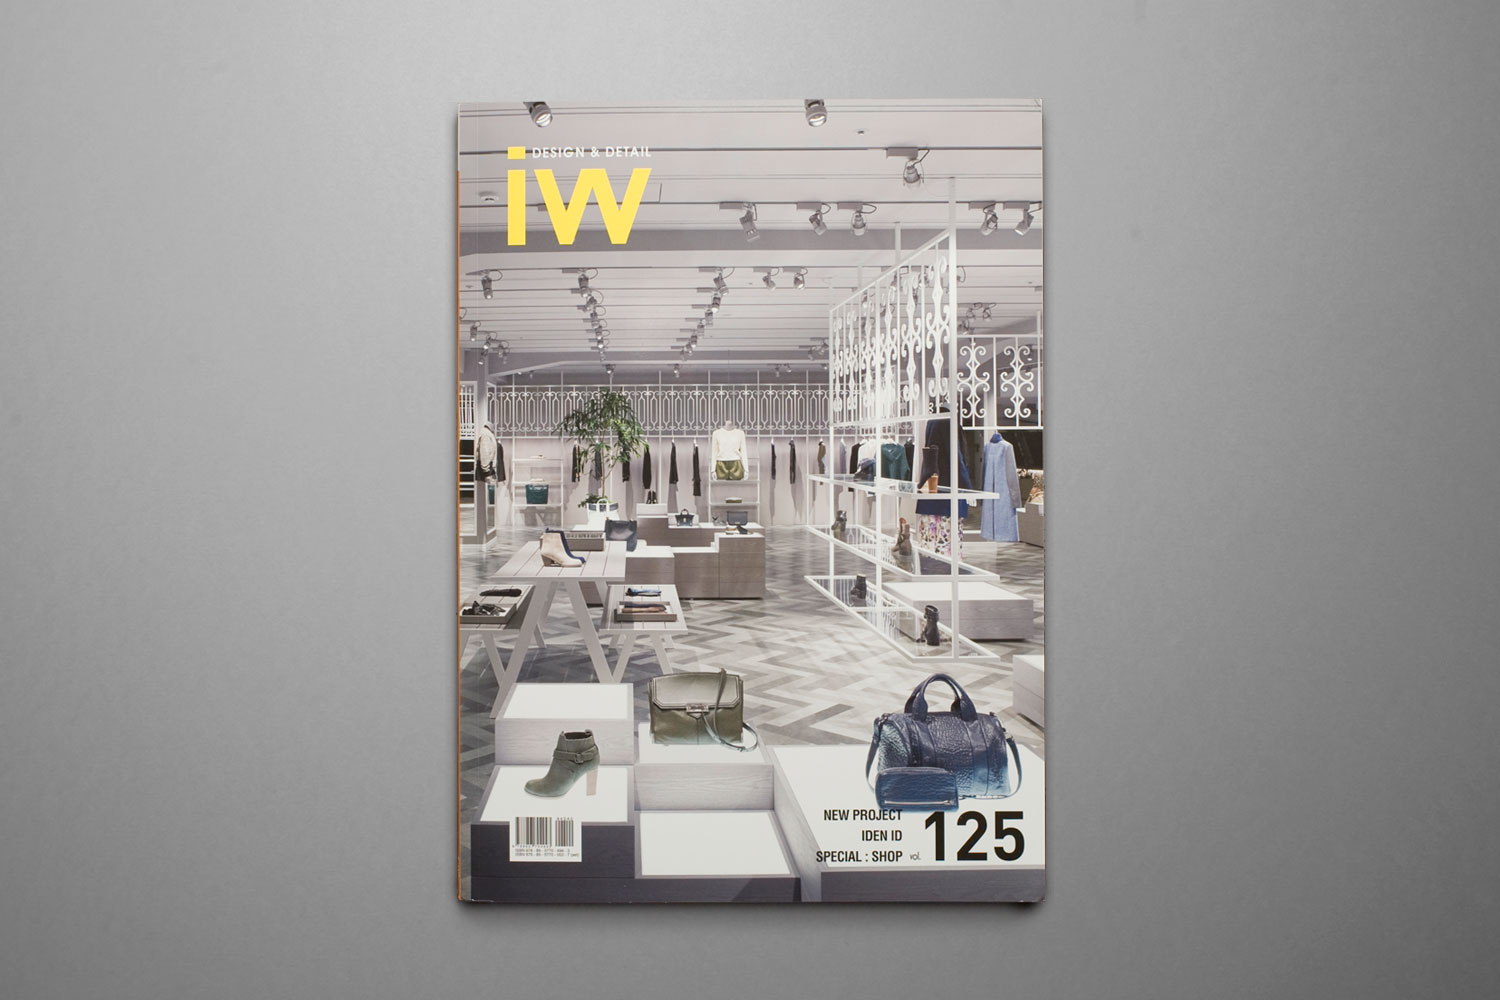 IW 125 - Design & Retail - Archiworld Publishing2013ISBN : 978-89-5770-494-3